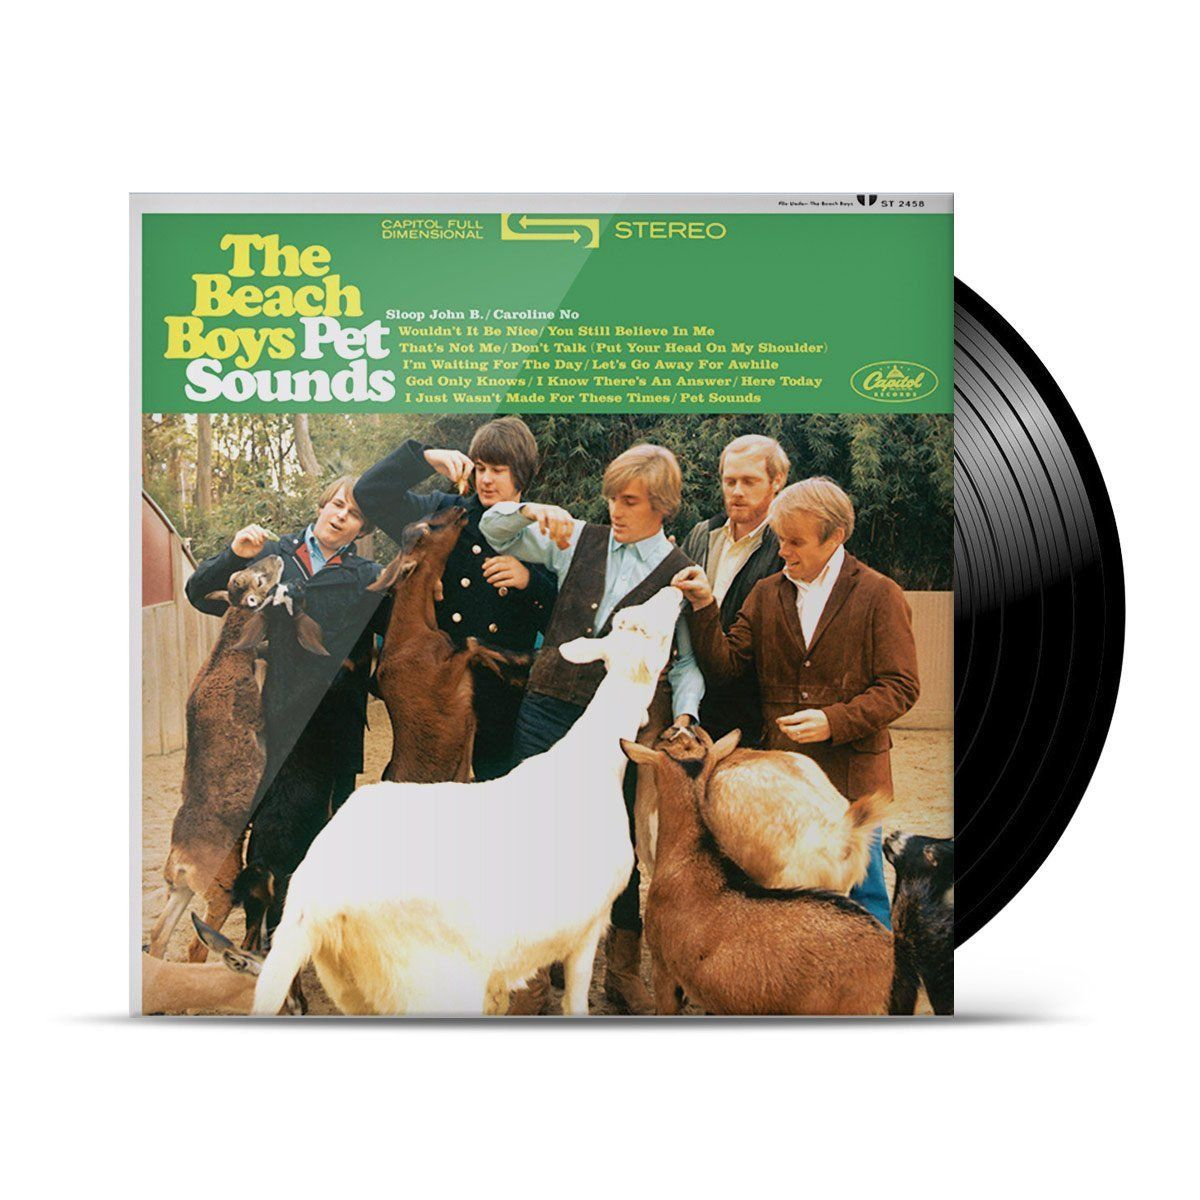 LP The Beach Boys Pet Sounds (Stereo) Oficial  - bandUP Store Marketplace